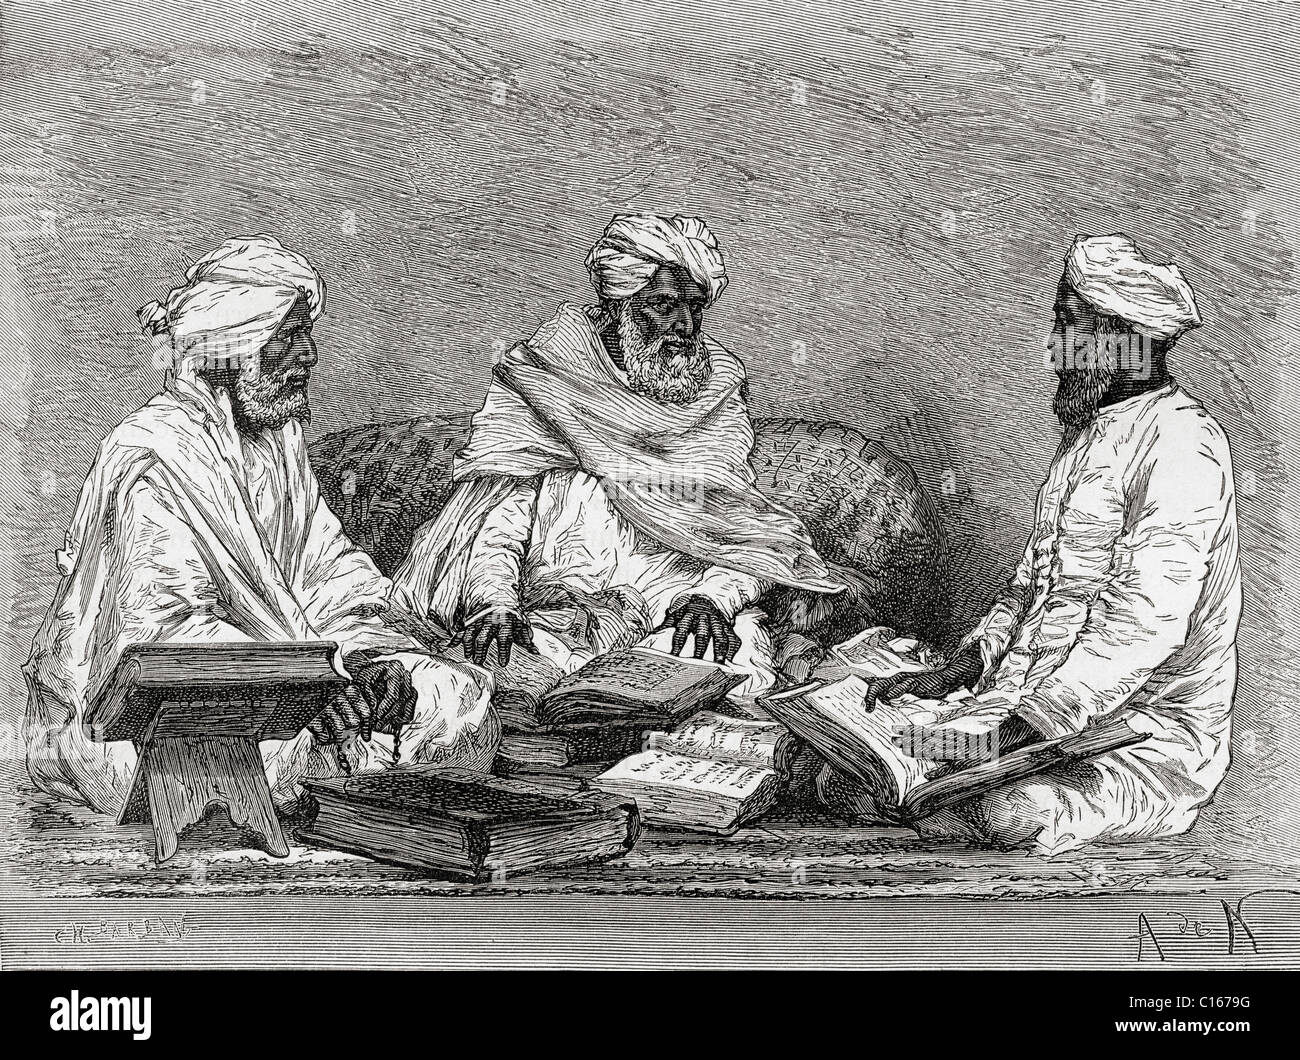 Mullahs from Bhopal, India in the 19th century. From El Mundo en la Mano, published 1878. - Stock Image